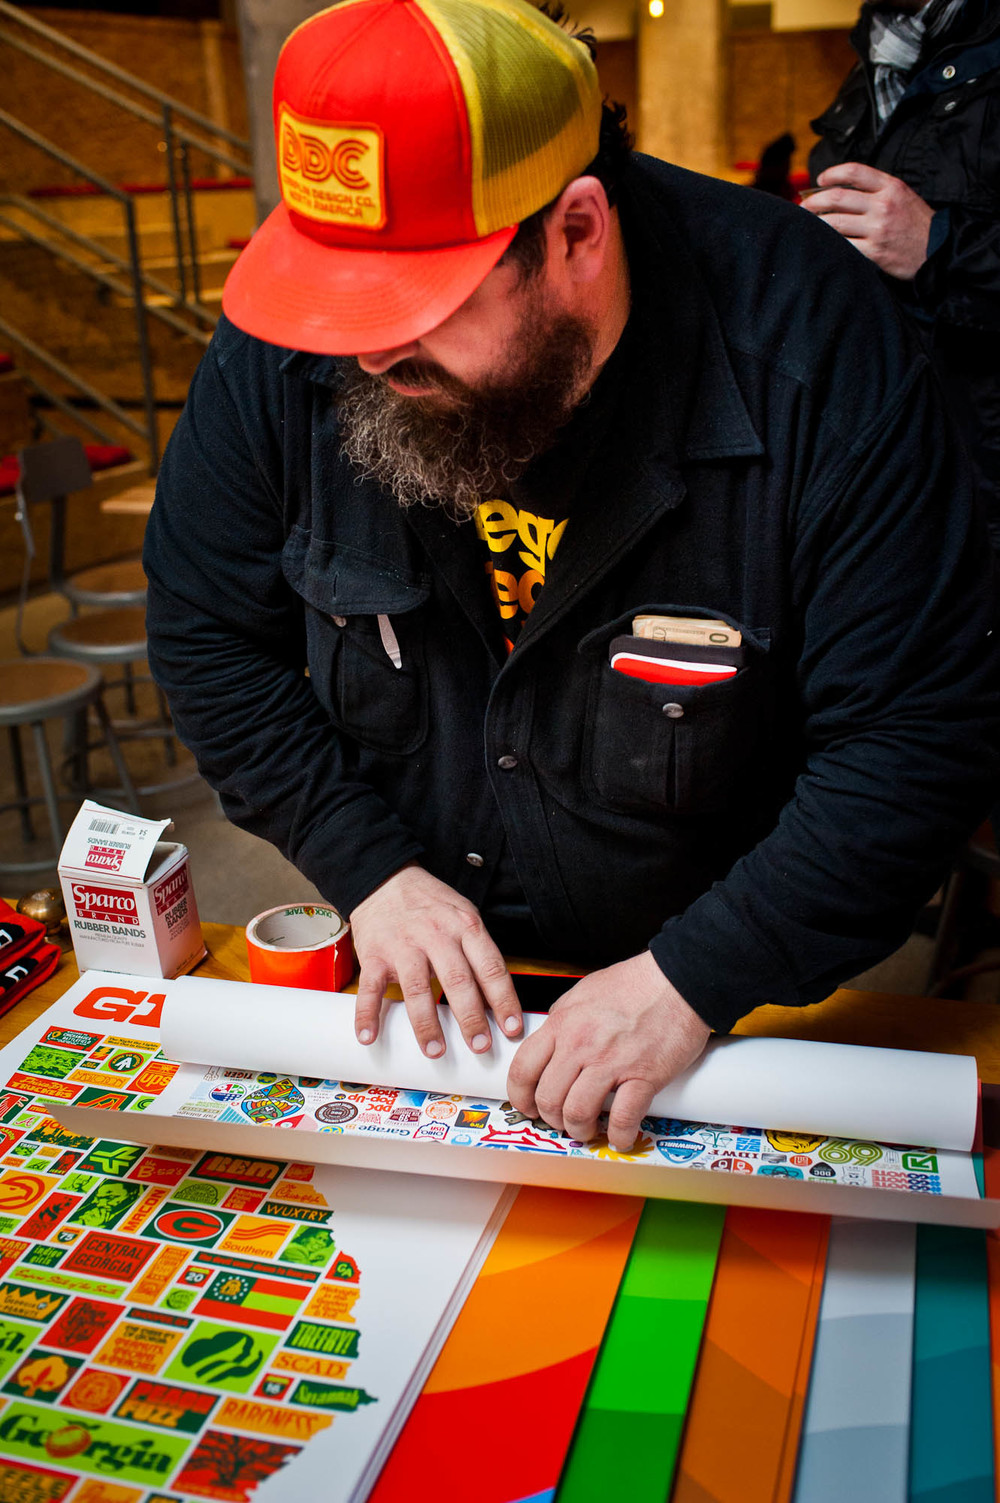 Aaron Draplin Event_01272016 (Web Ready)_060001.JPG